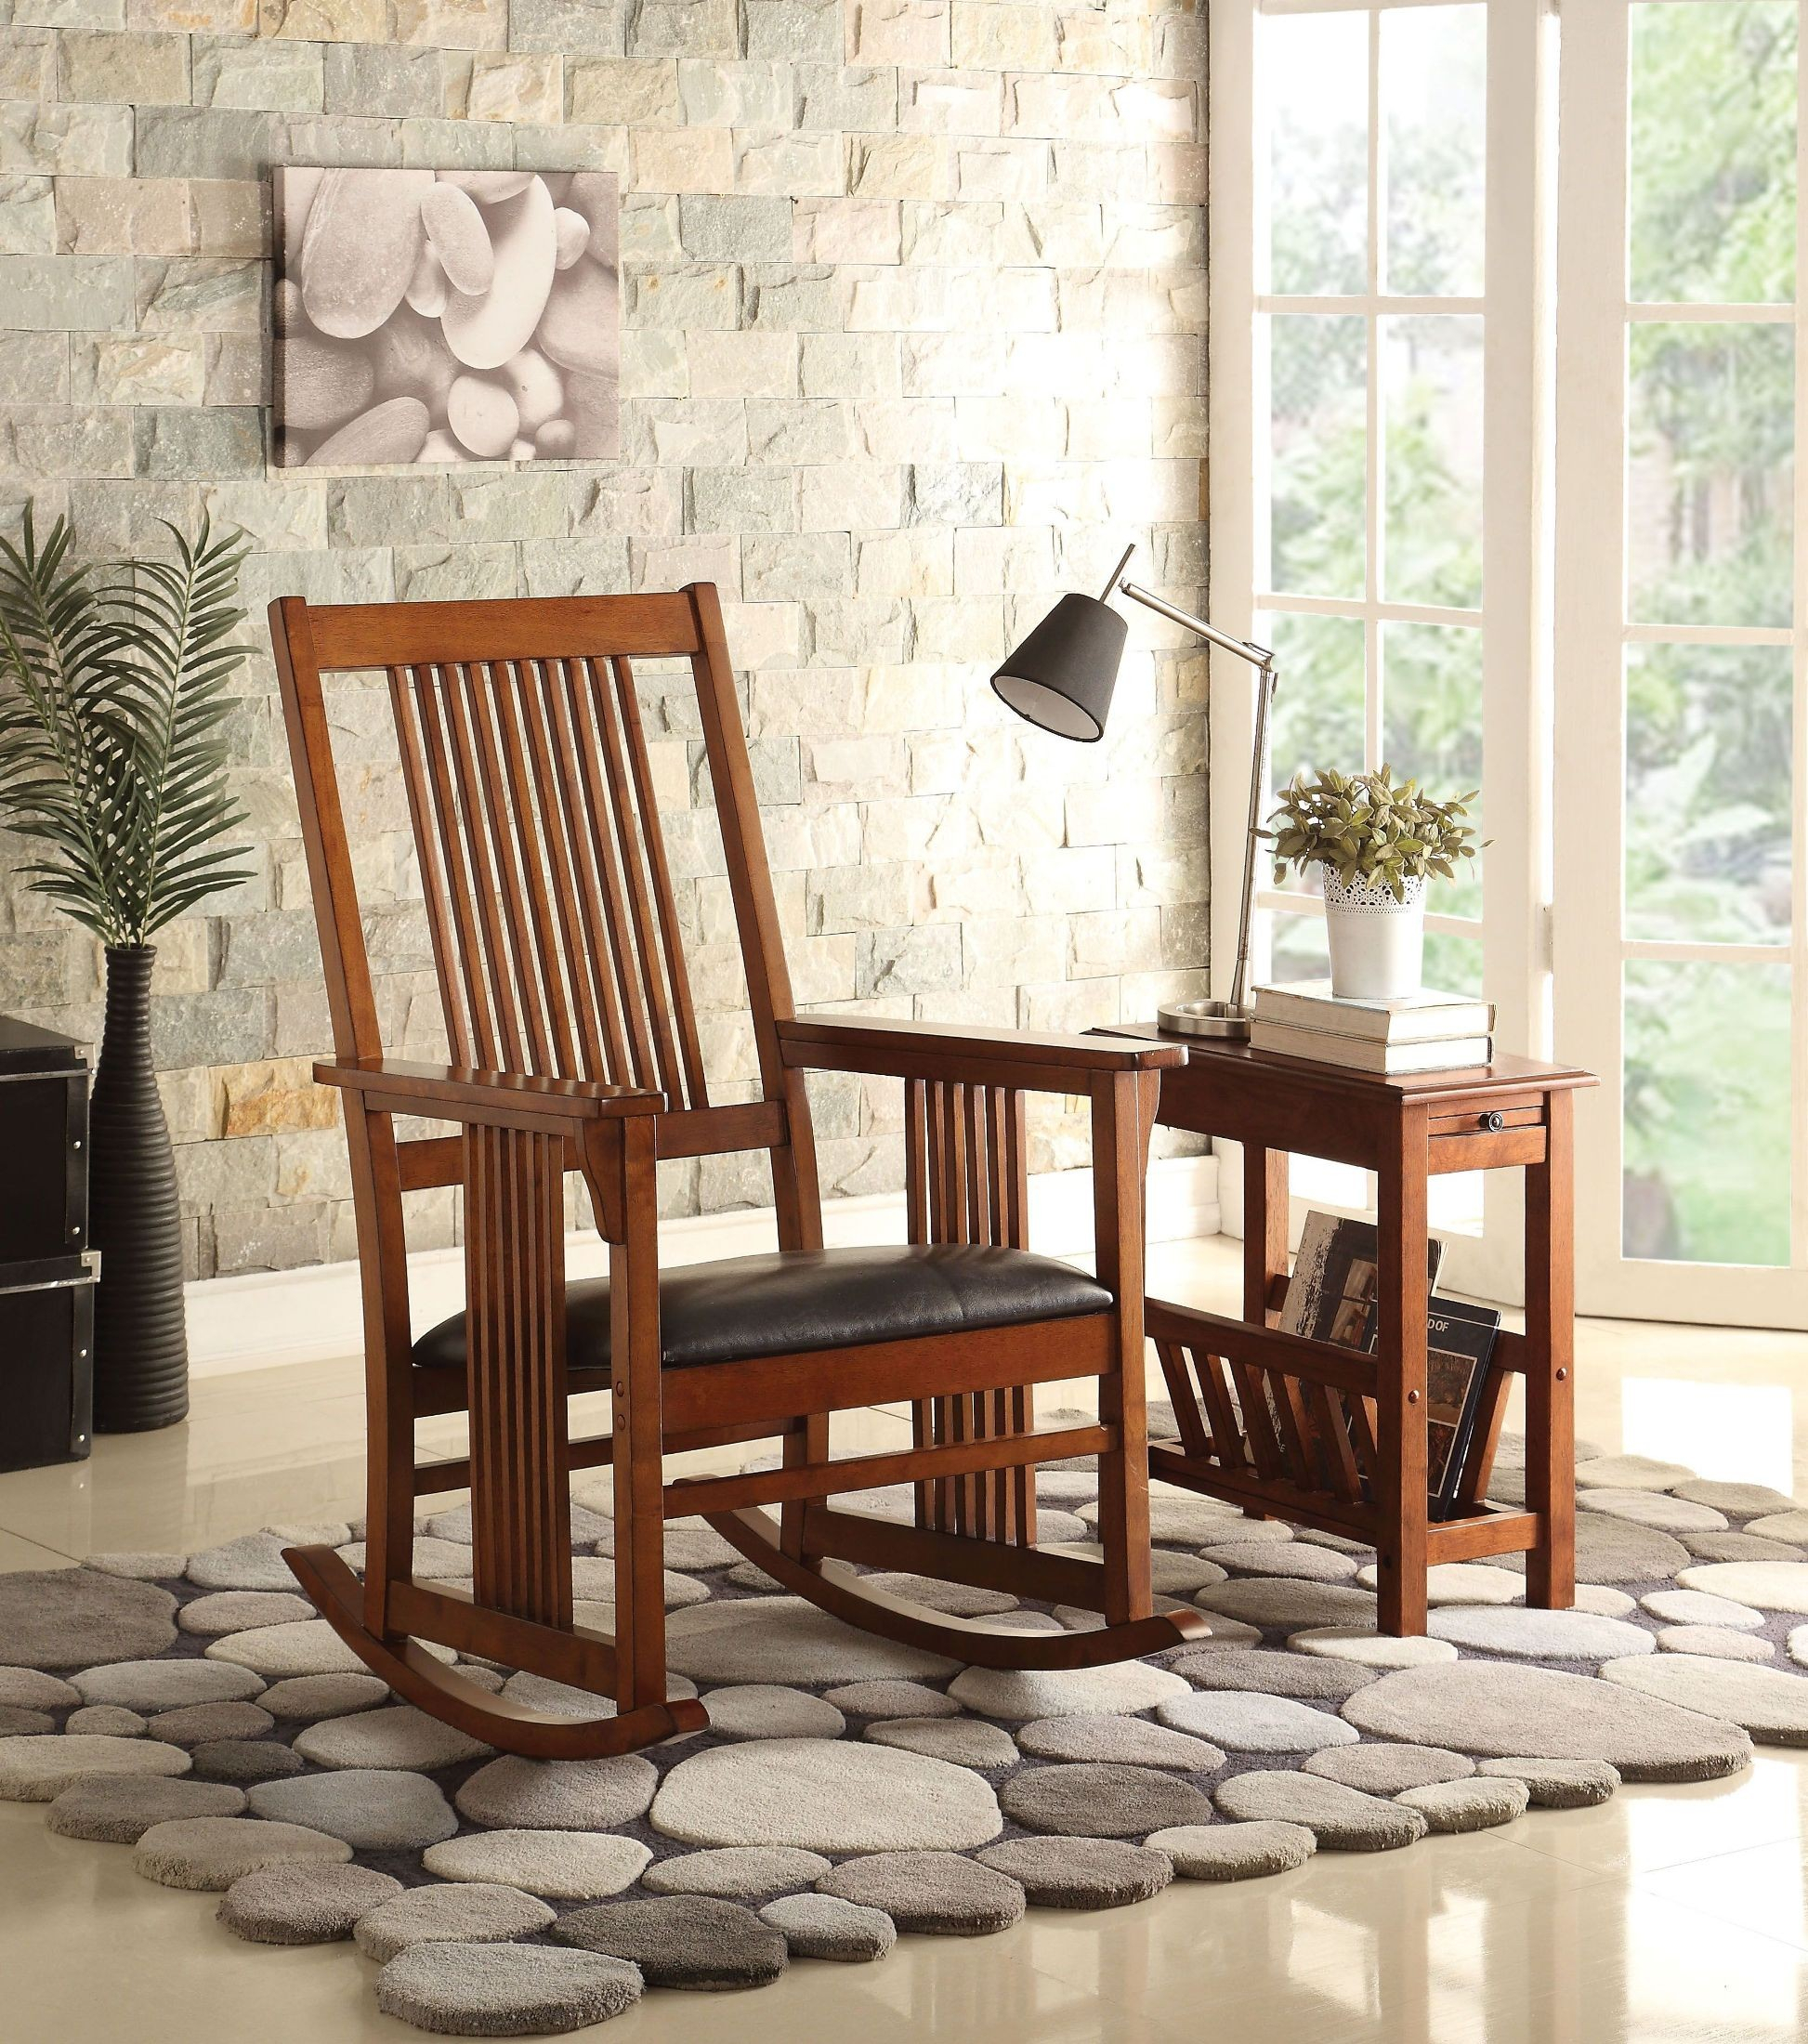 Kloris Tobacco Wooden Rocking Chair Intended For Tobacco Brown Wooden Rocking Chairs (#11 of 20)